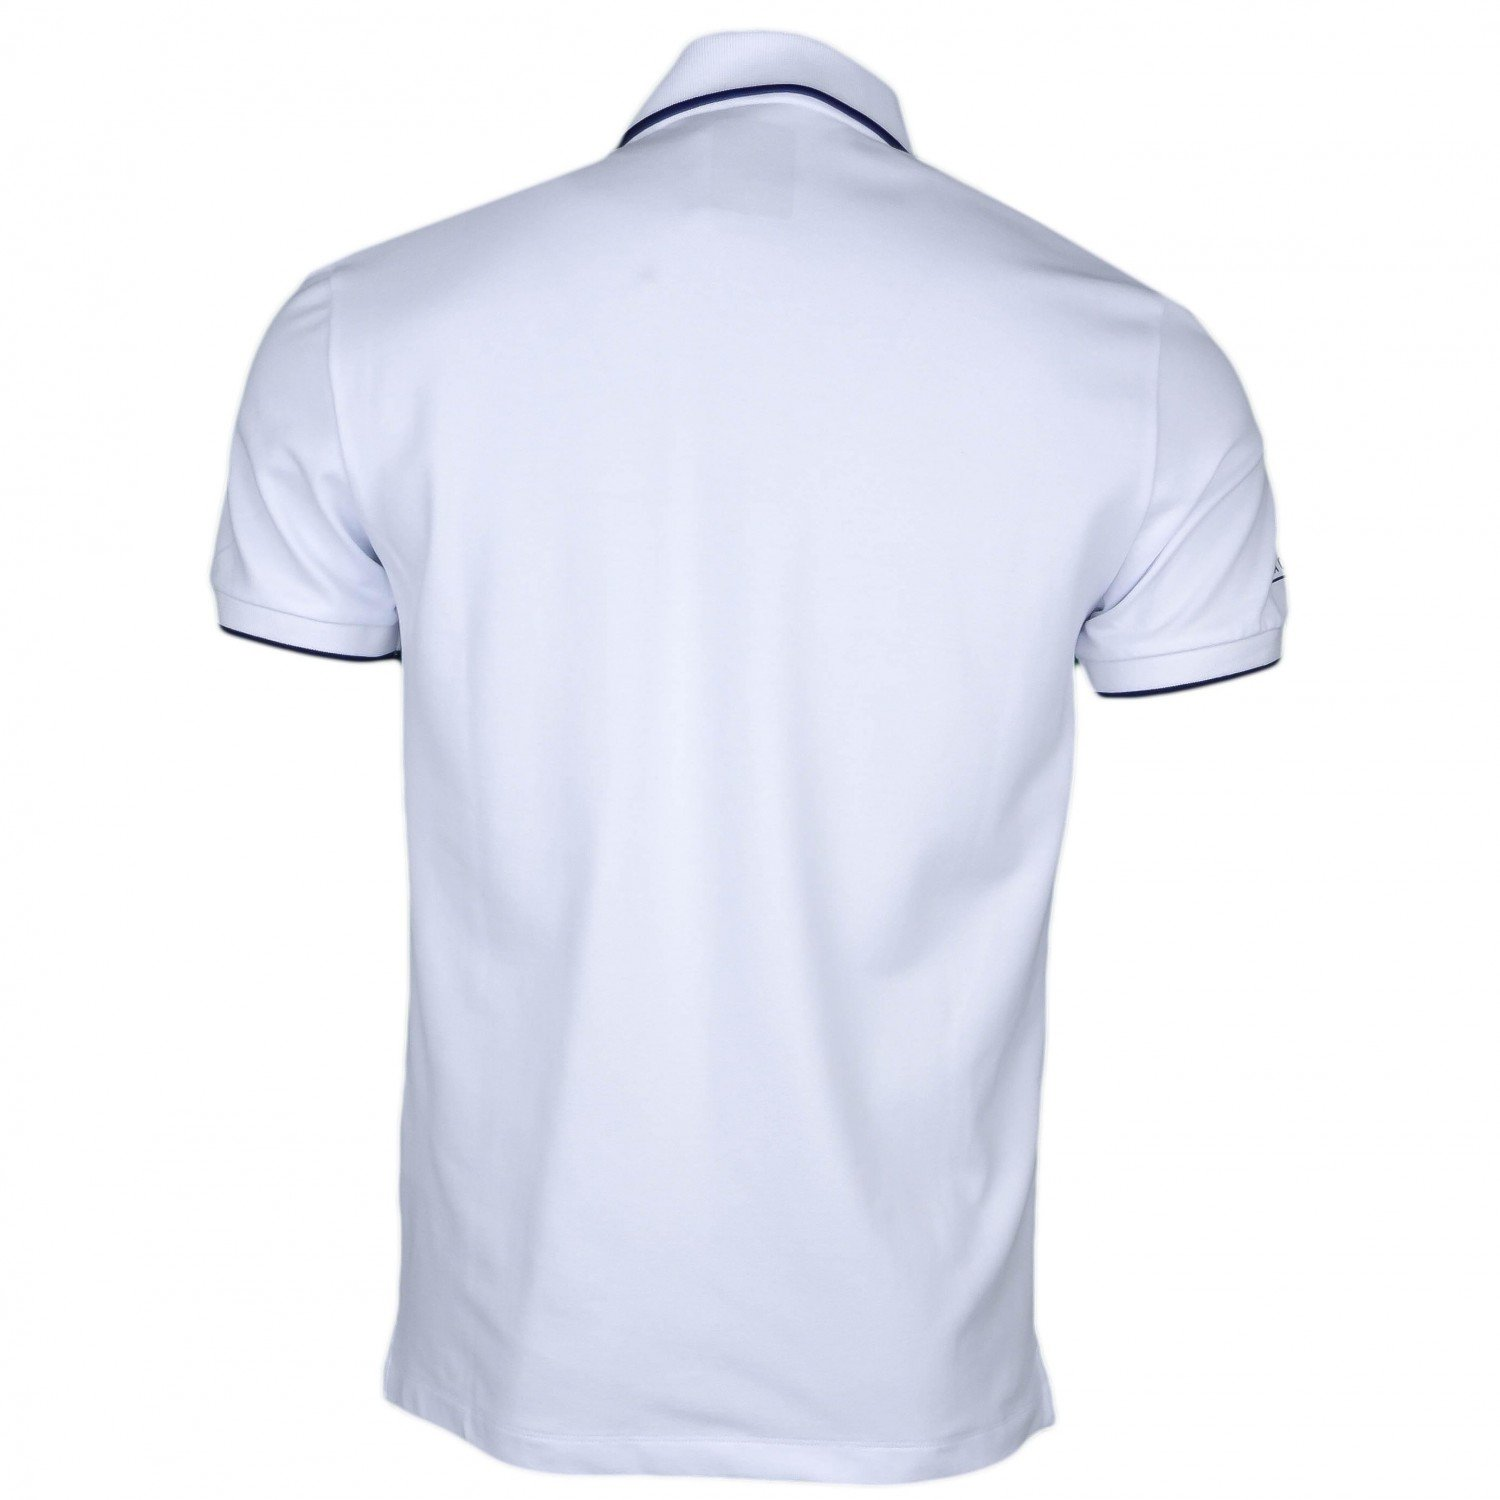 Hackett London HM562108-Polo Hombre Blanco XXXL: Amazon.es: Ropa y ...